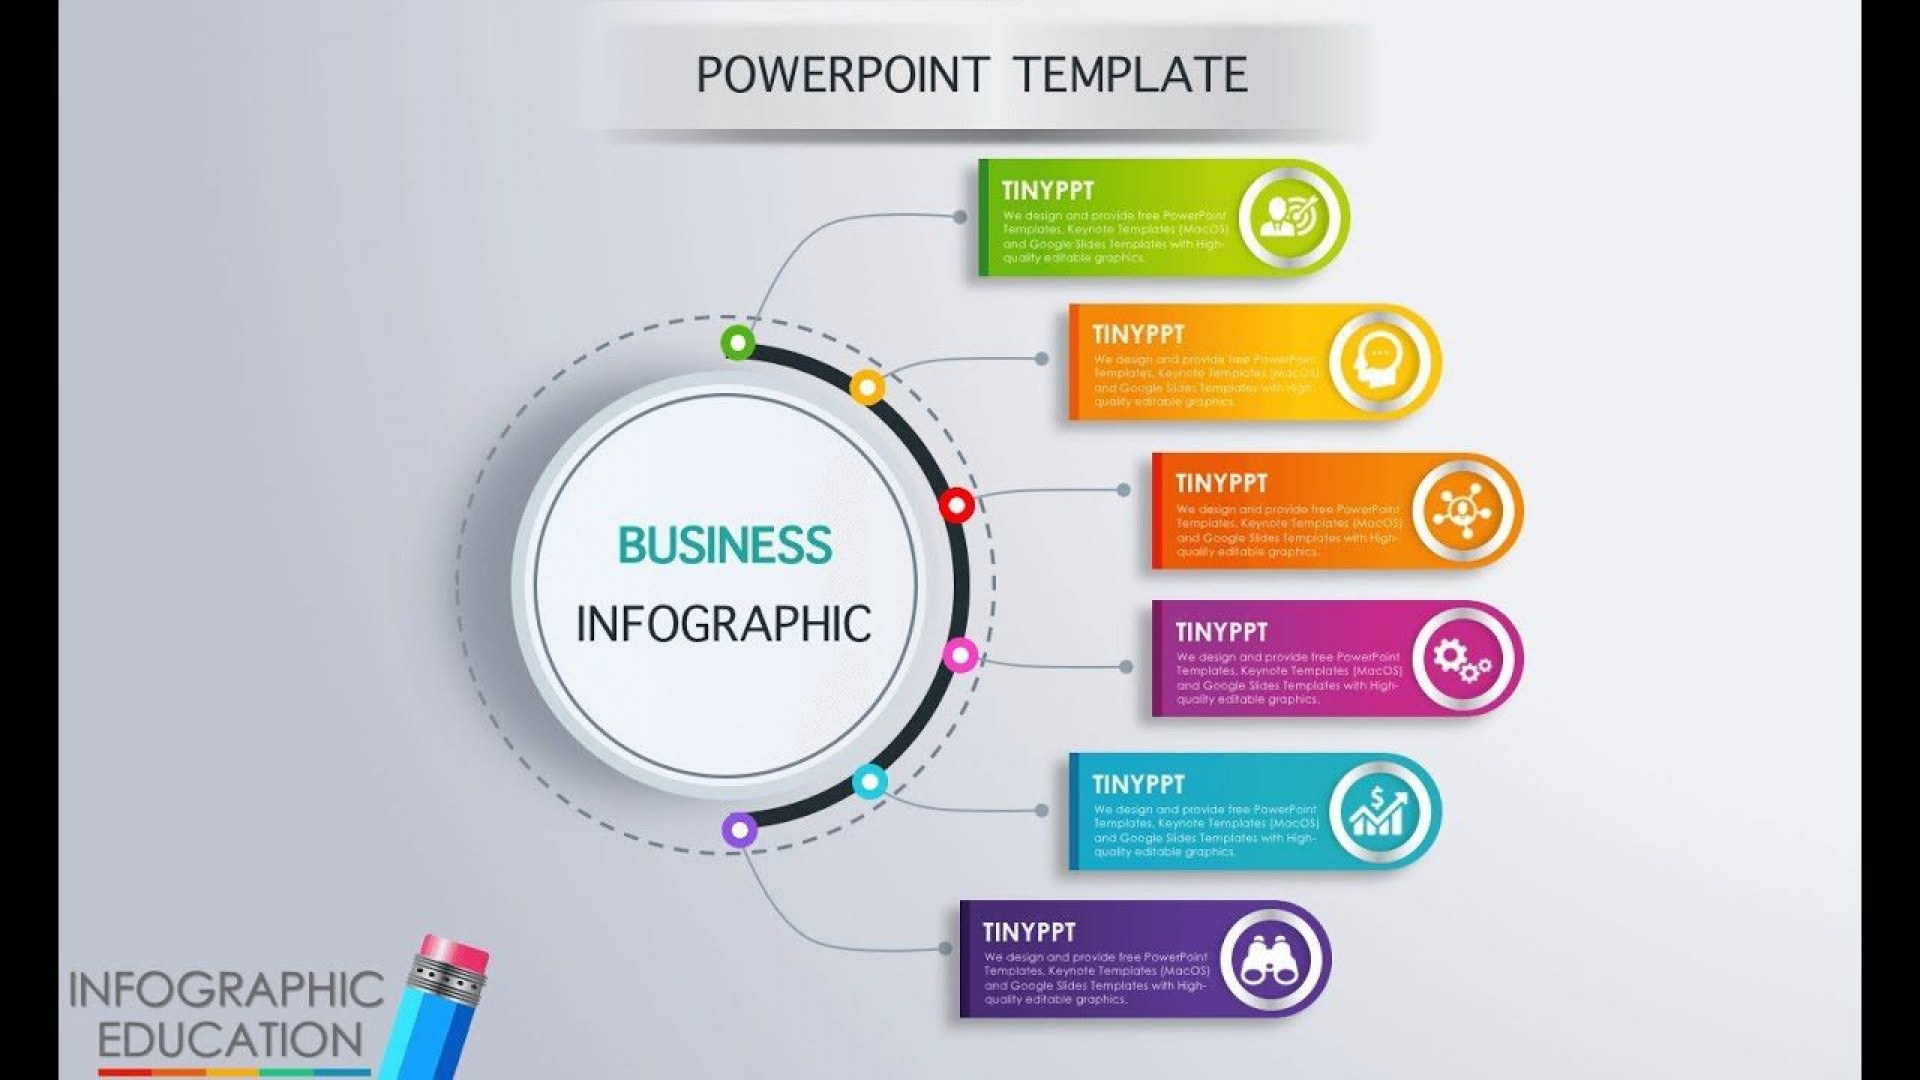 008 Beautiful Animation Powerpoint Template Free Download High Definition  3d Animated 2016 Microsoft 2007 20141920